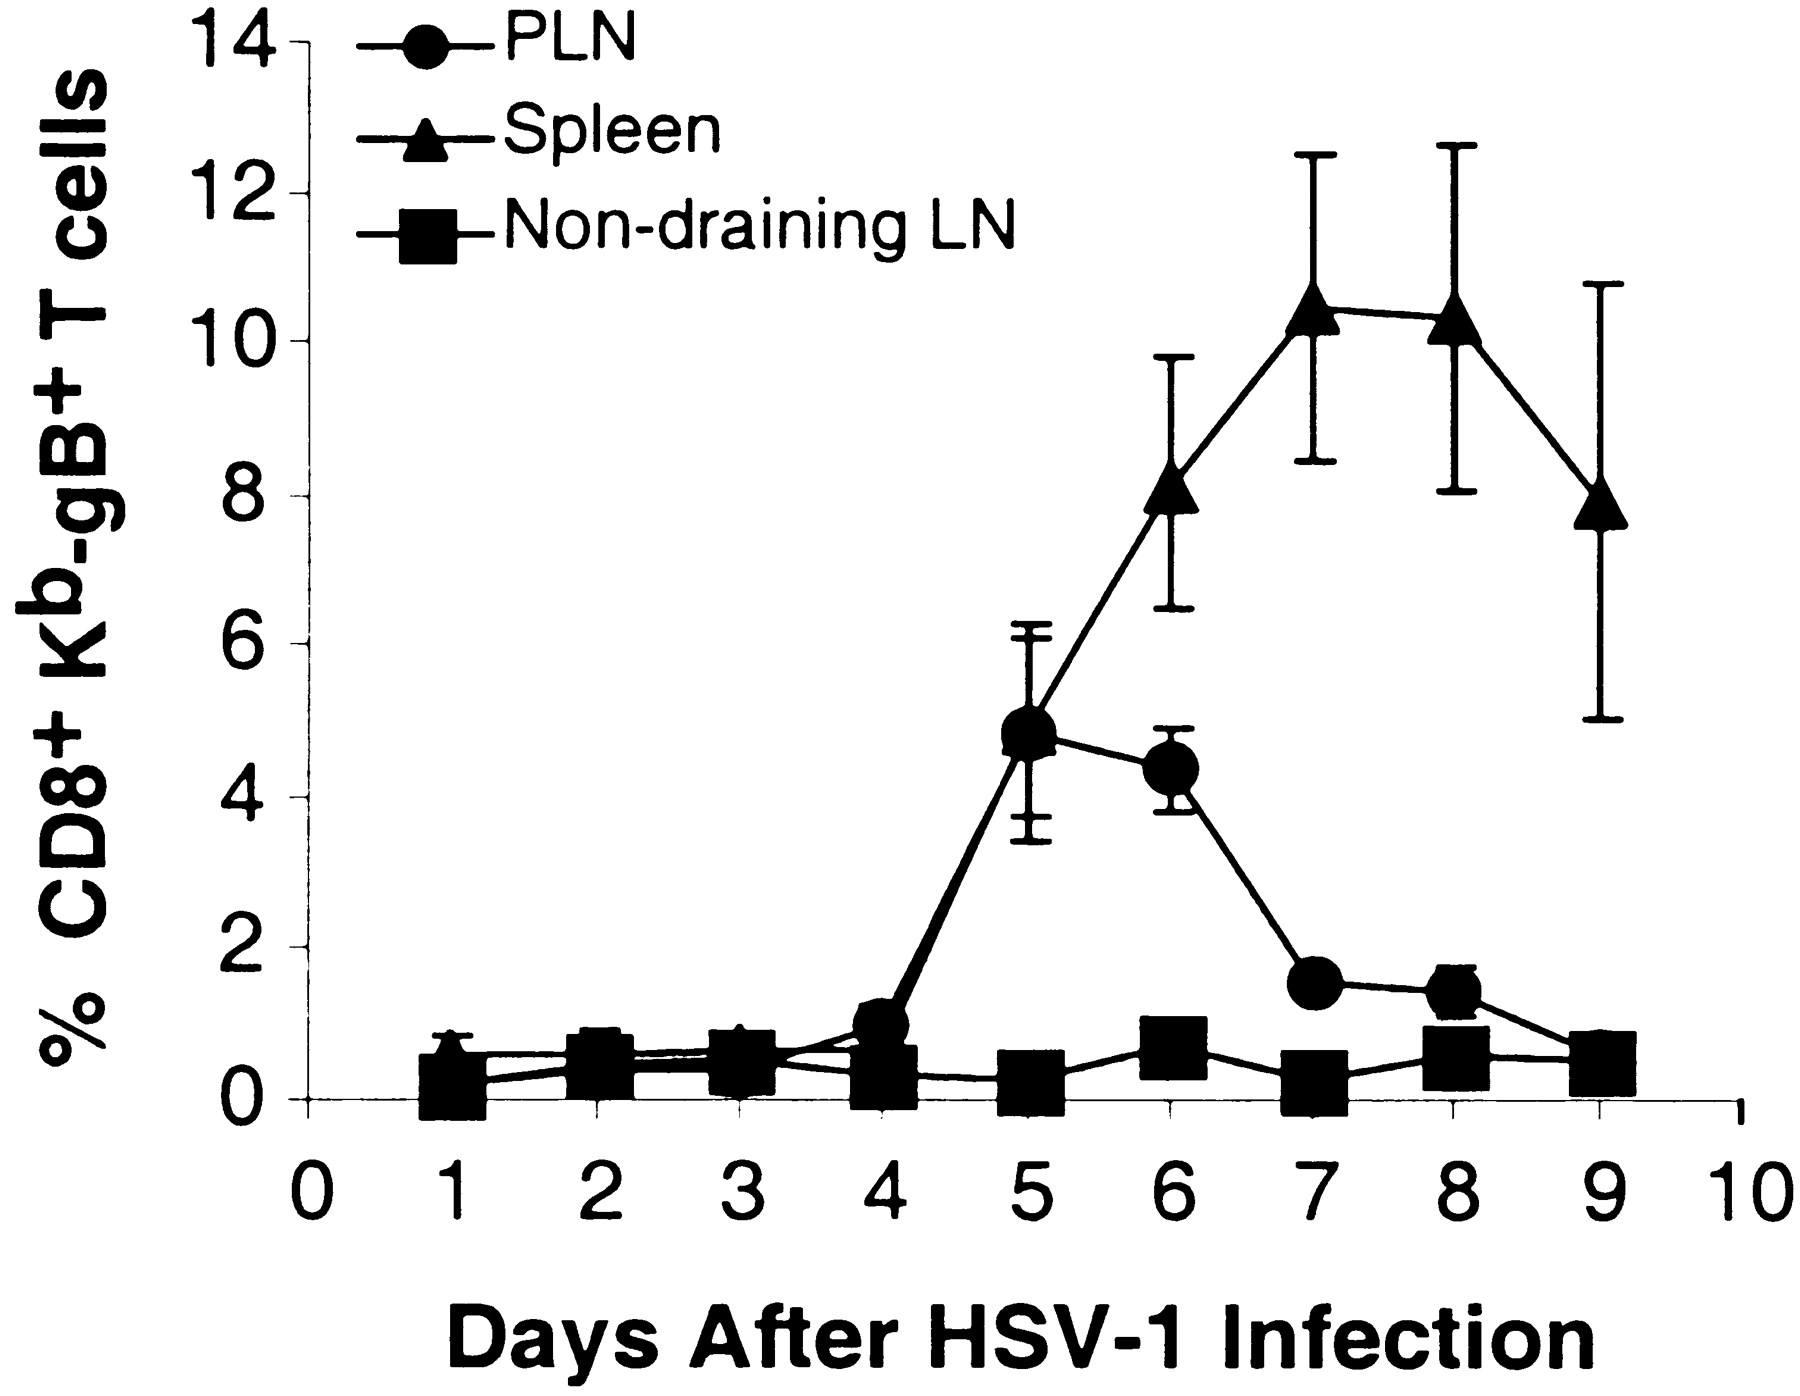 Progression Of Armed Ctl From Draining Lymph Node To